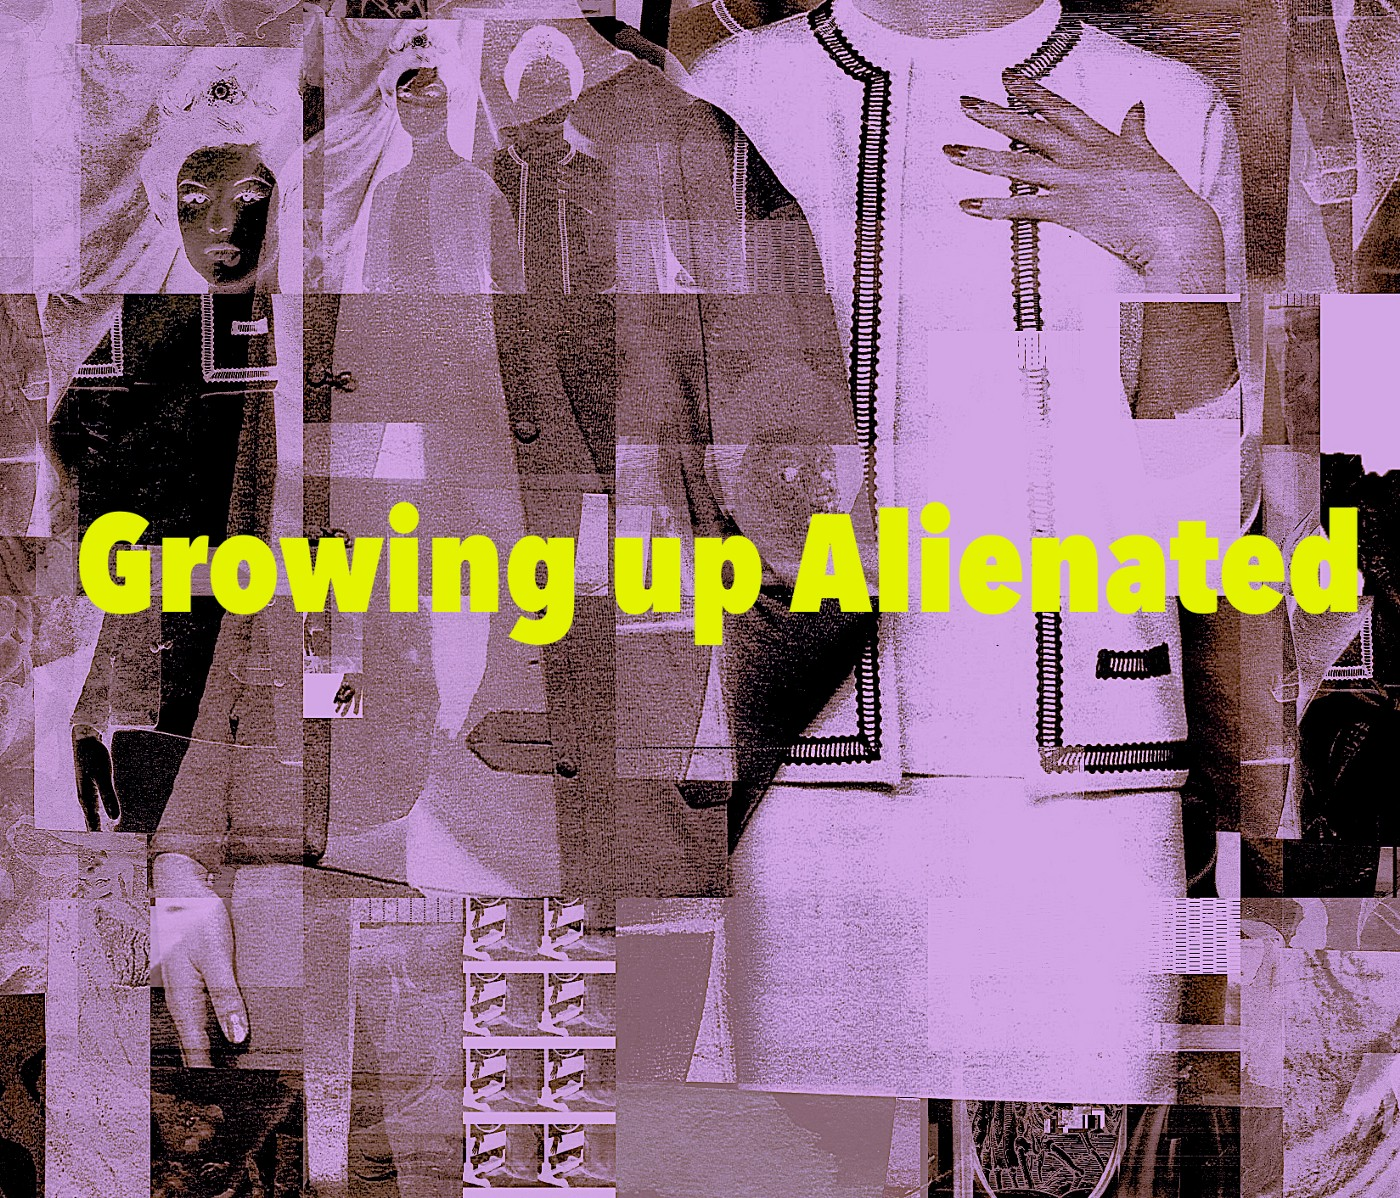 Image collage with the words 'Growing up Alienated' overlayed on top.